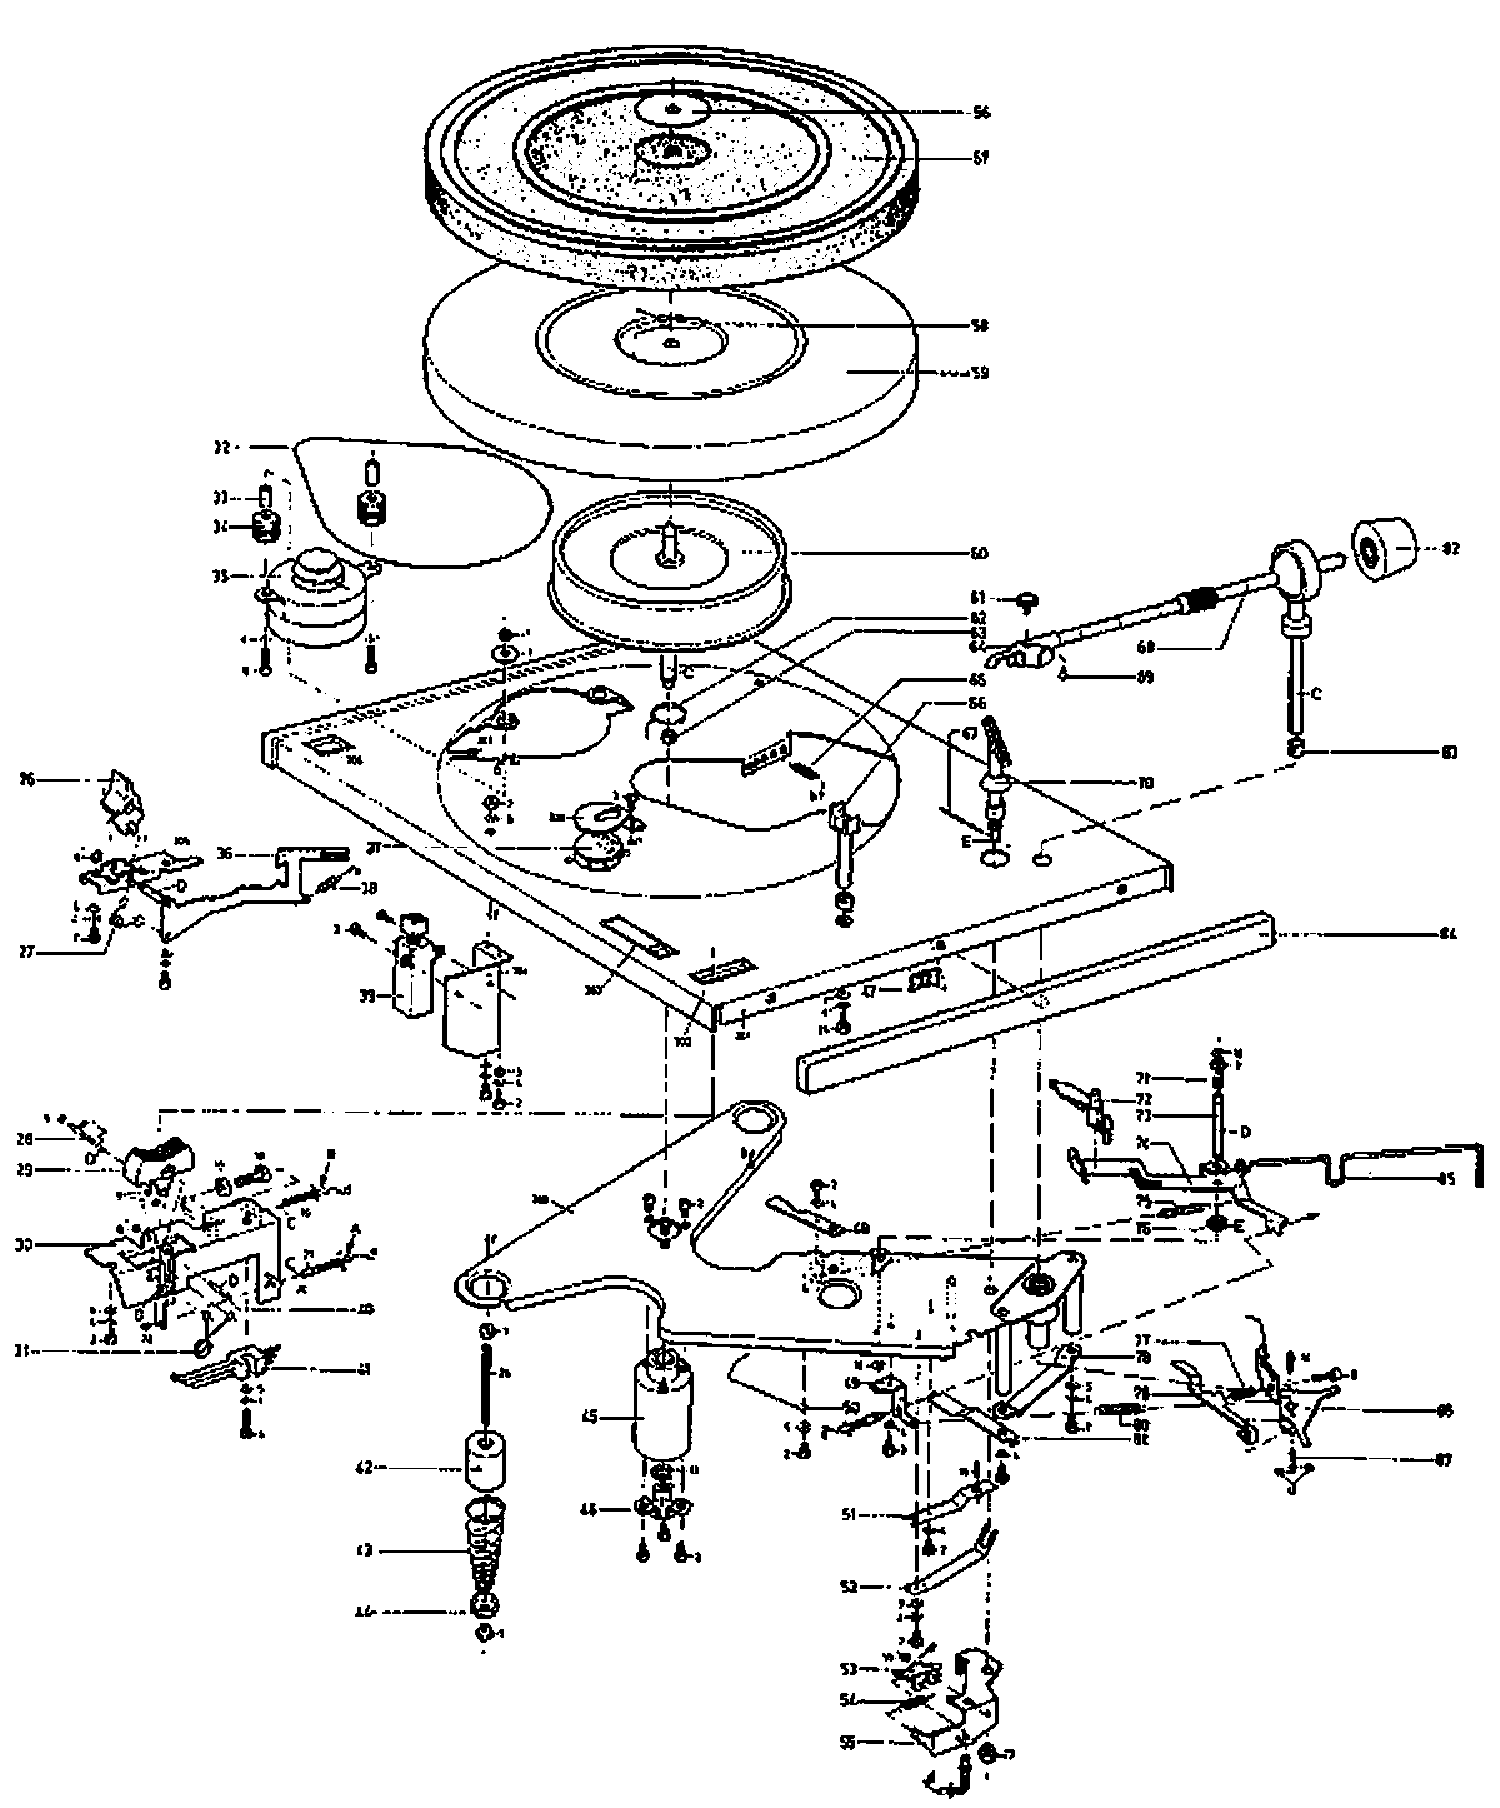 Lr3 fuse diagram grand national interior wiring diagram